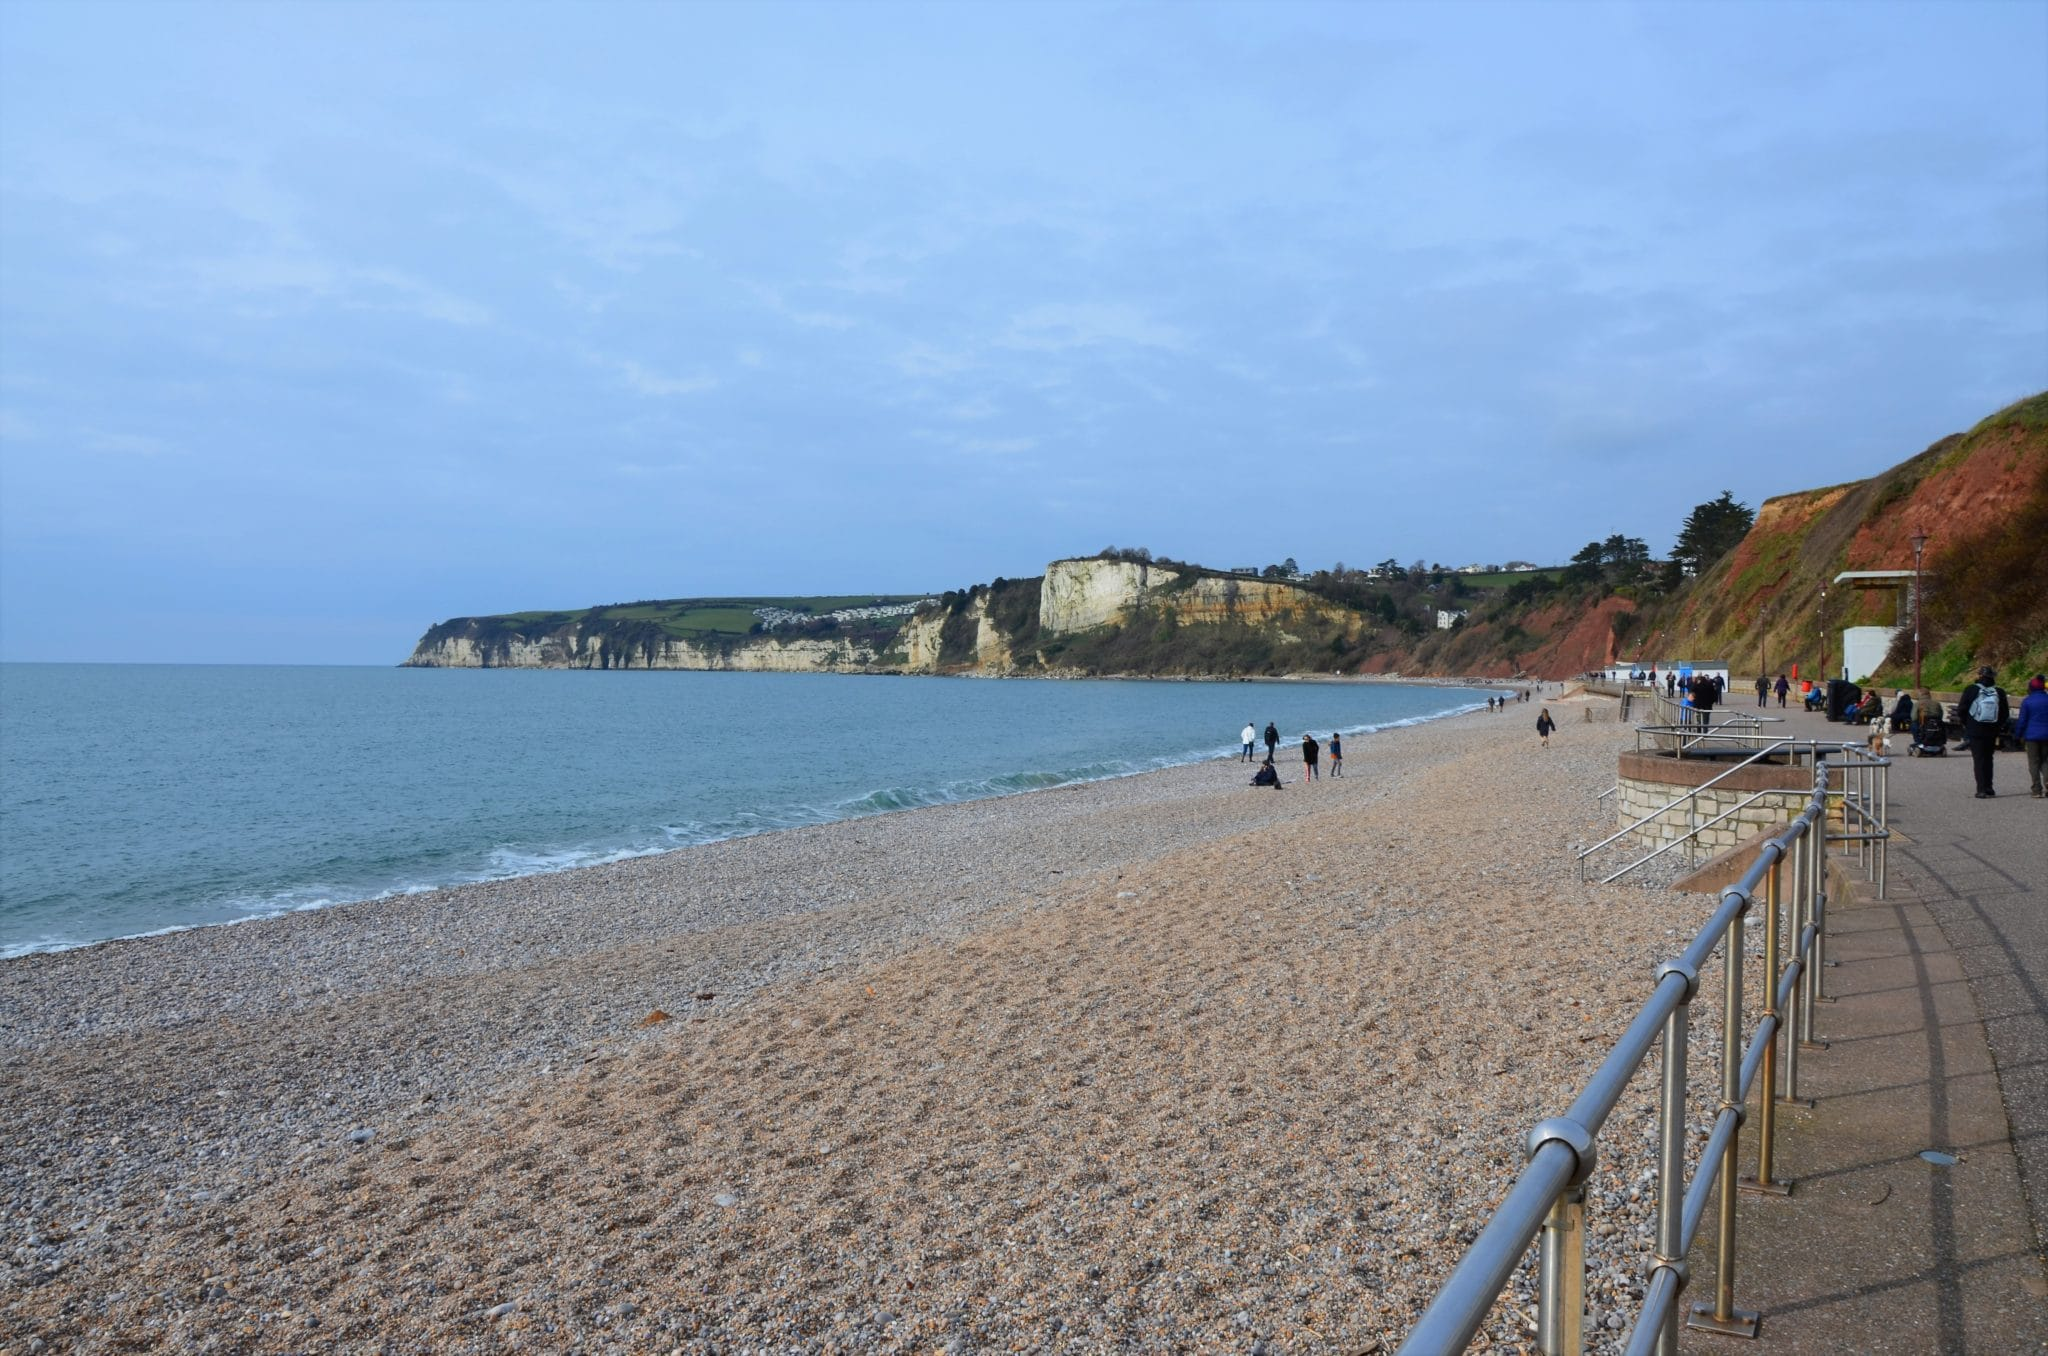 Visiting Seaton on Dorset's Jurassic Coast